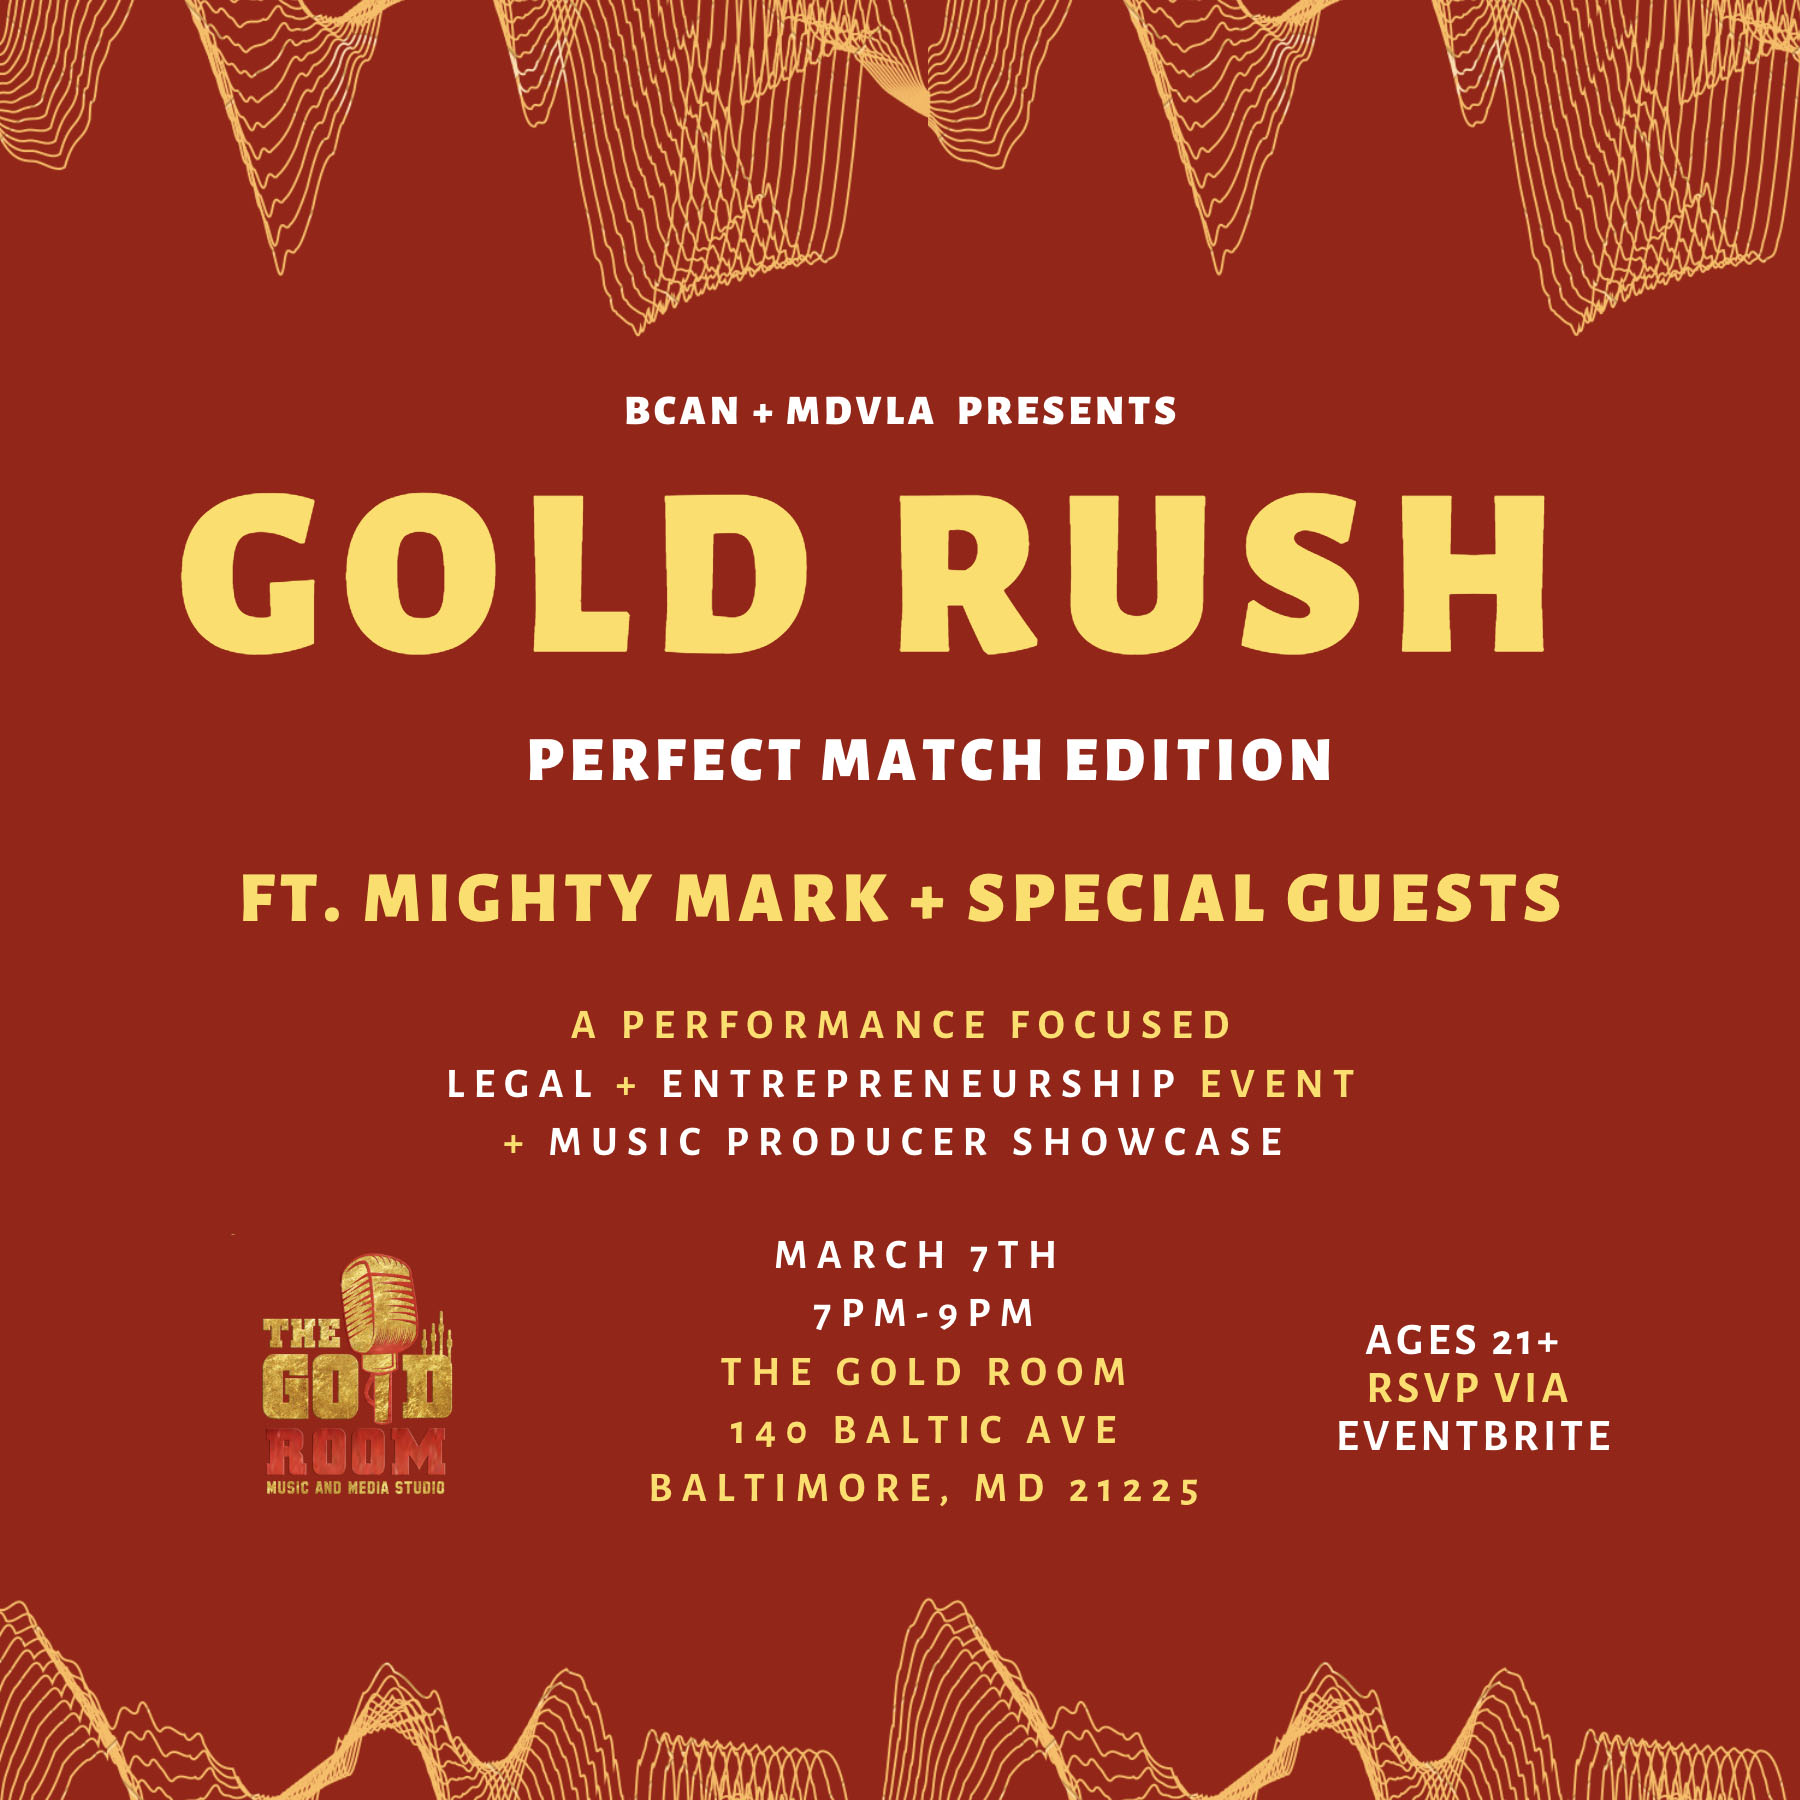 Gold Rush March 7 Flyer.jpg